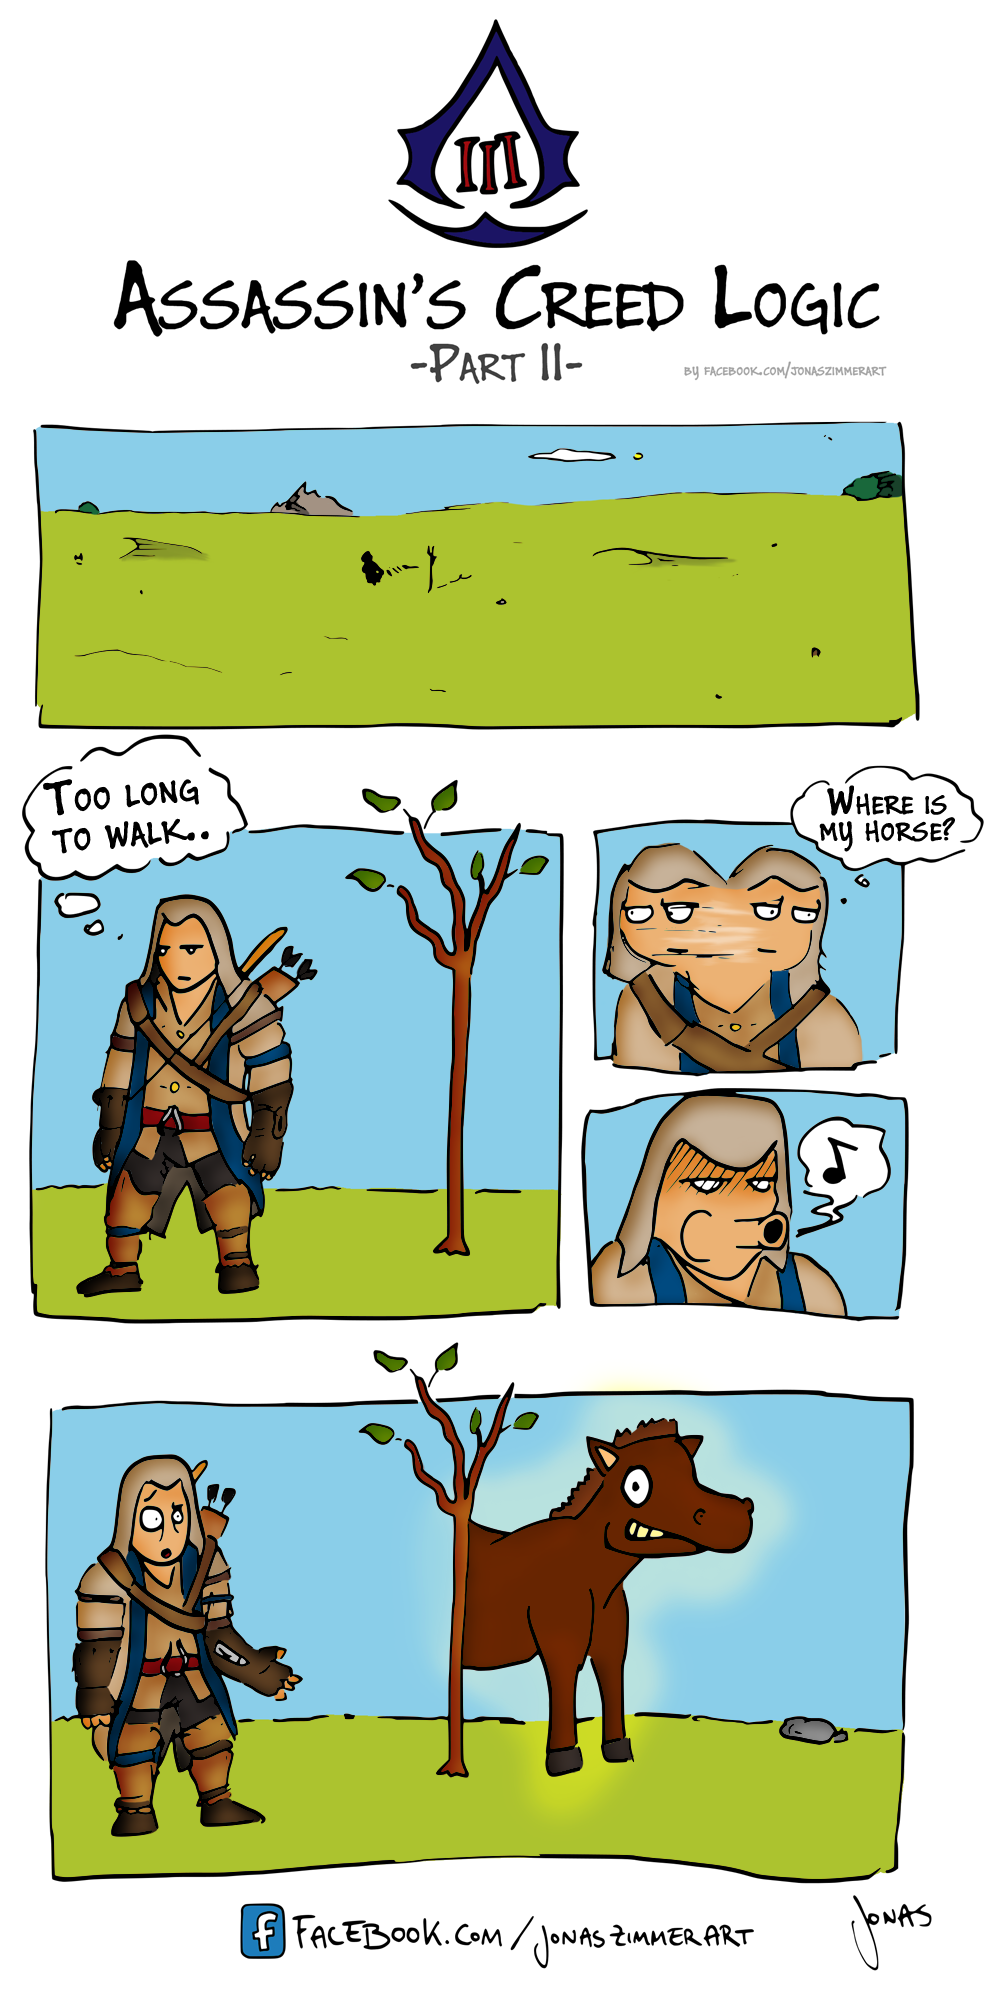 Assassin's Creed Logic part II